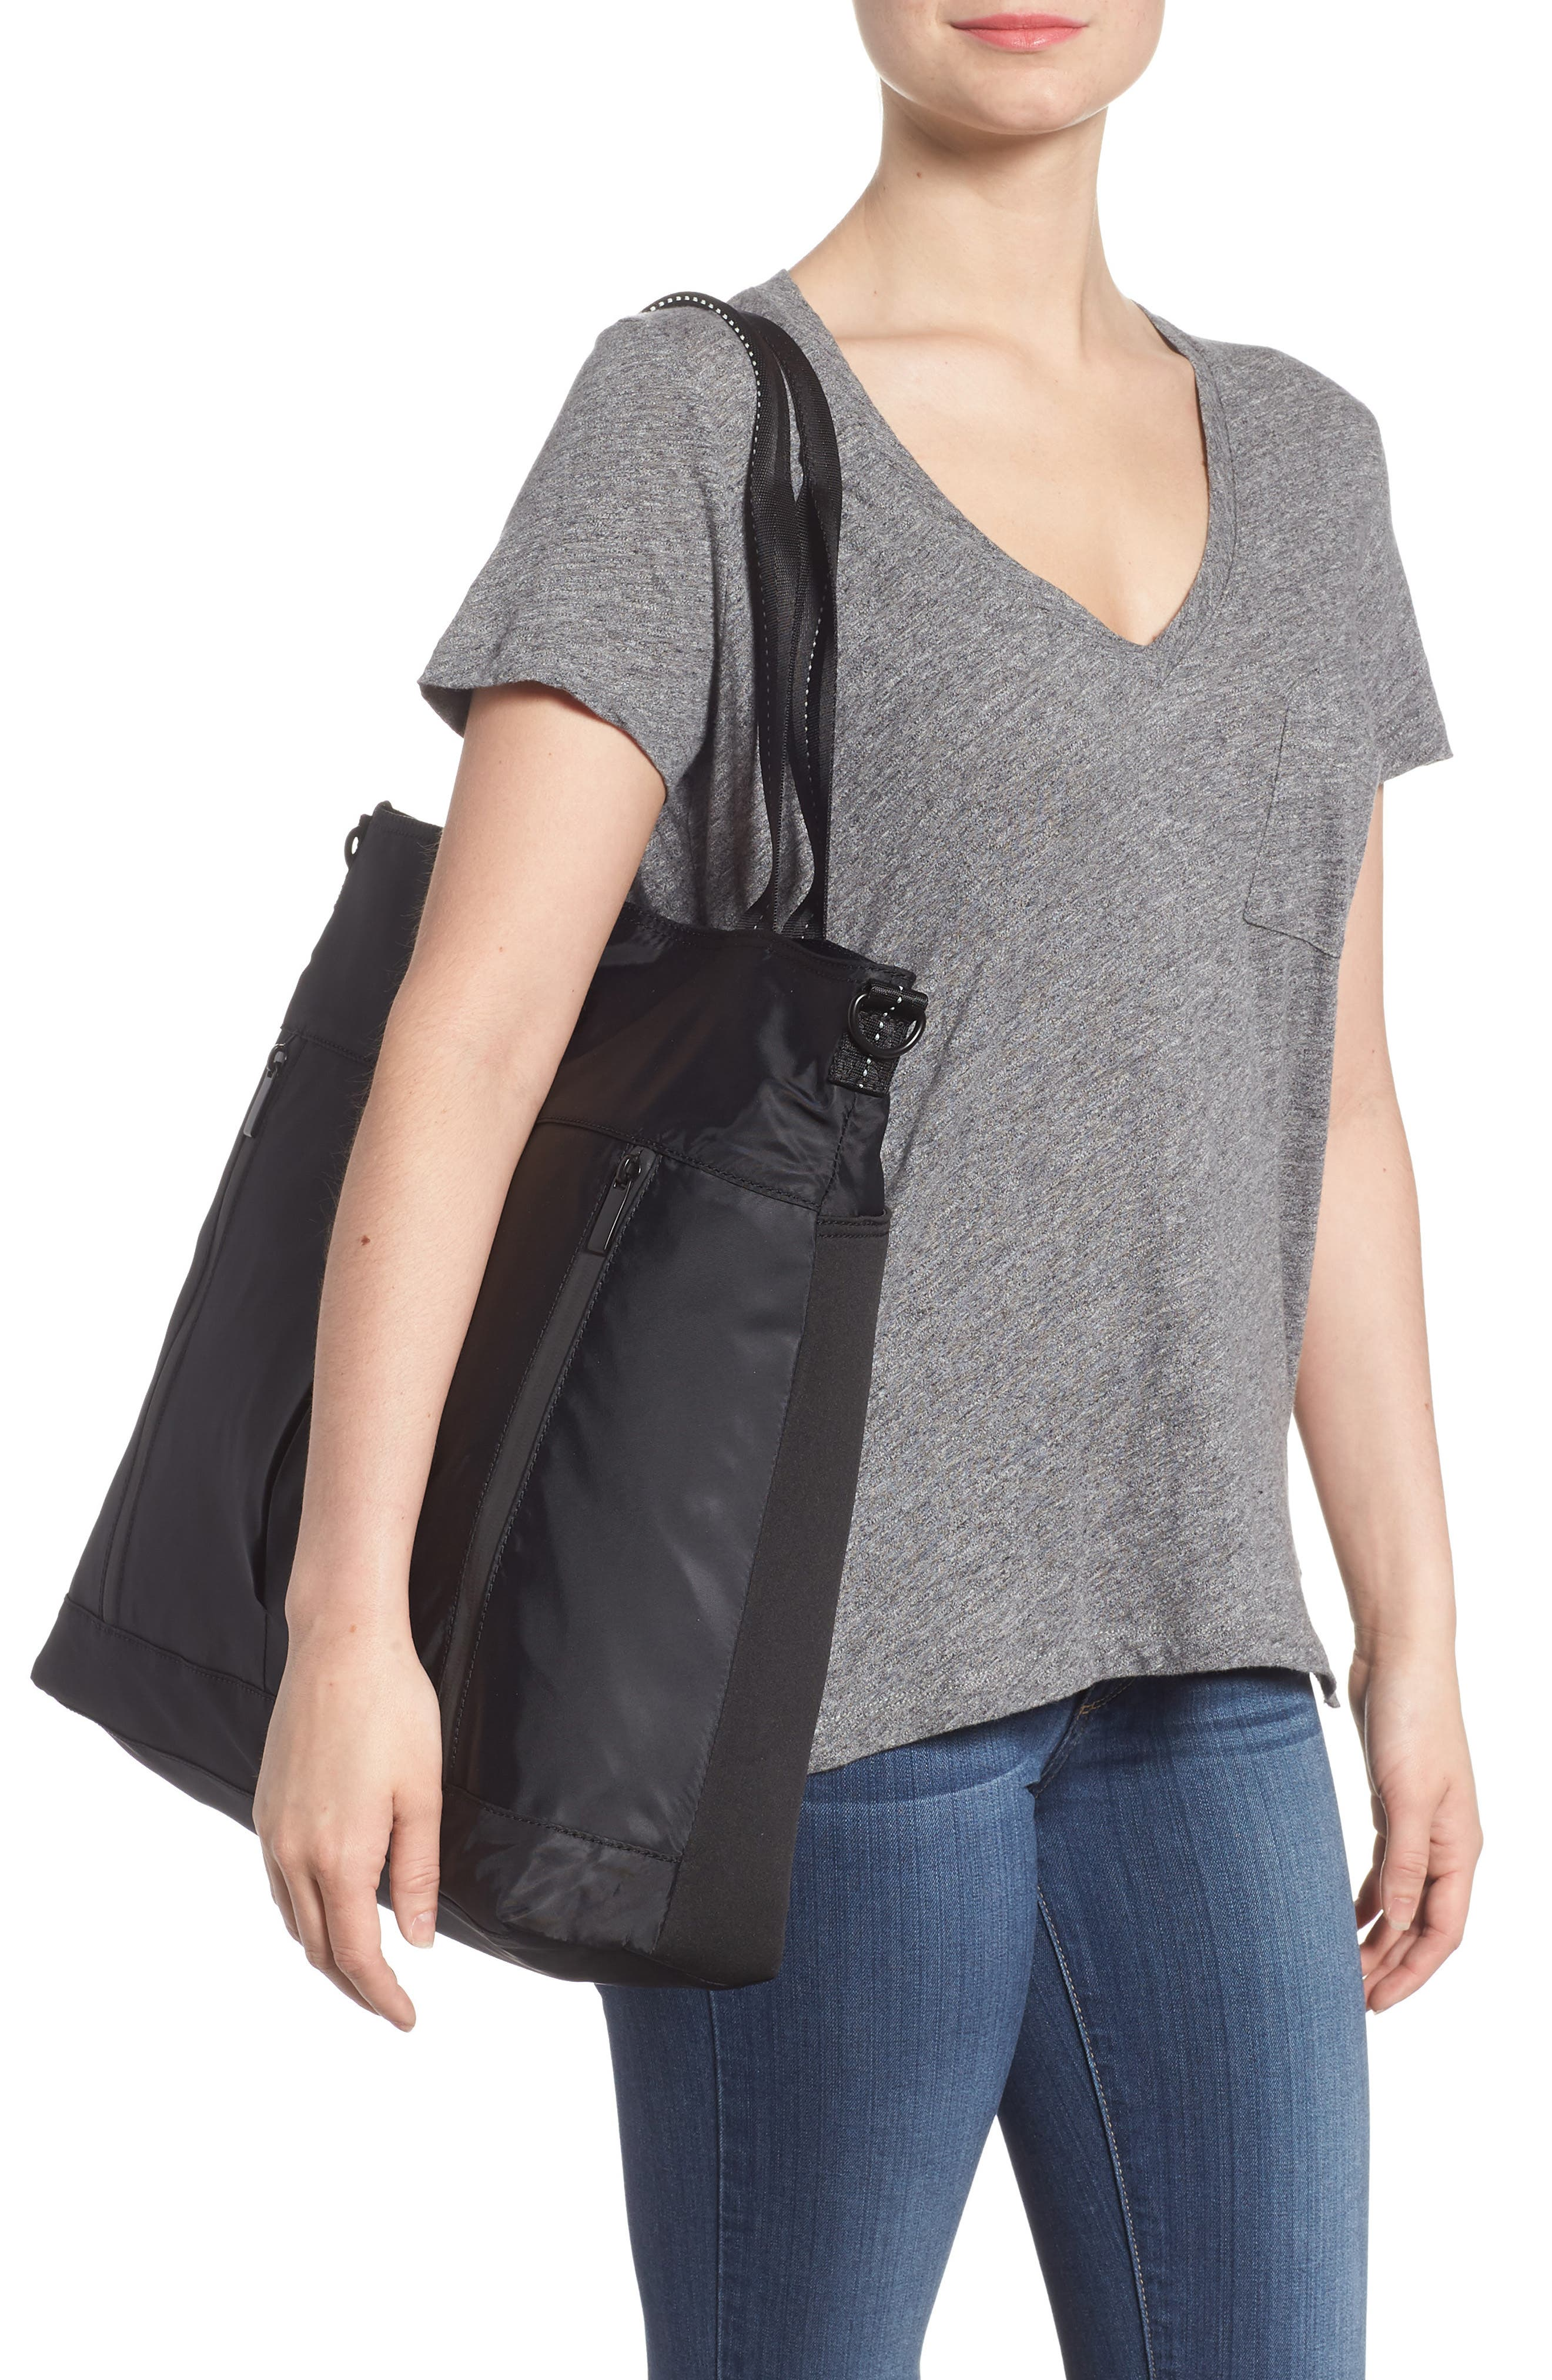 Reflective Nylon Tote Bag,                             Alternate thumbnail 2, color,                             Black